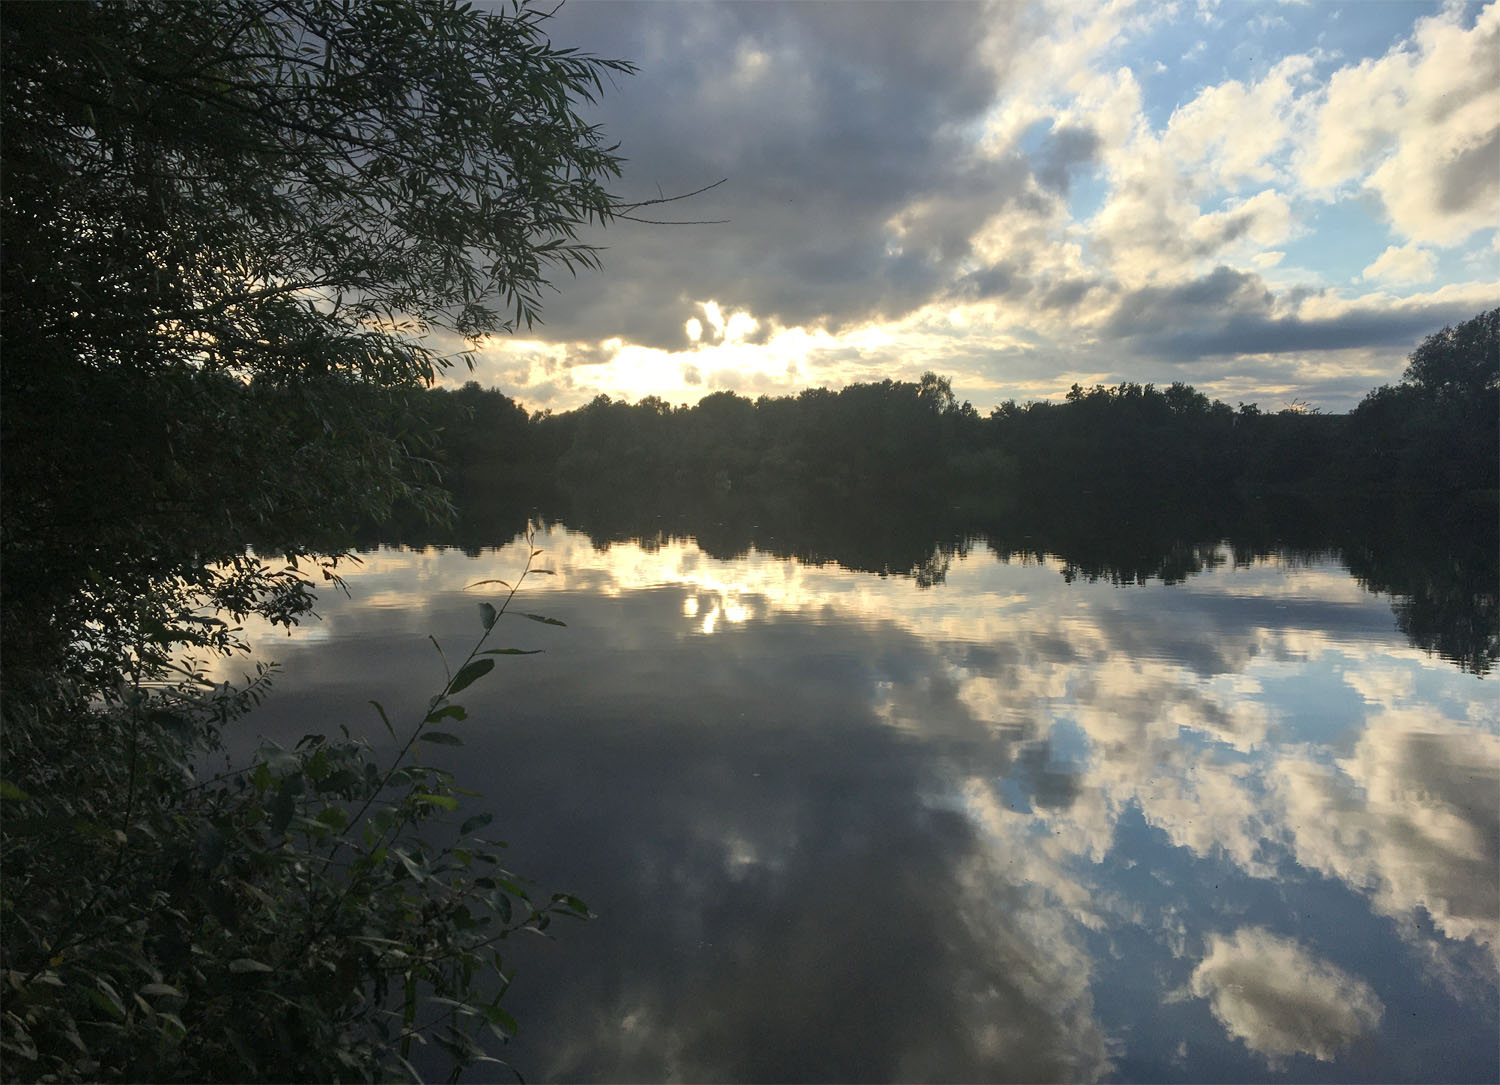 Reflections 8 Aug 21